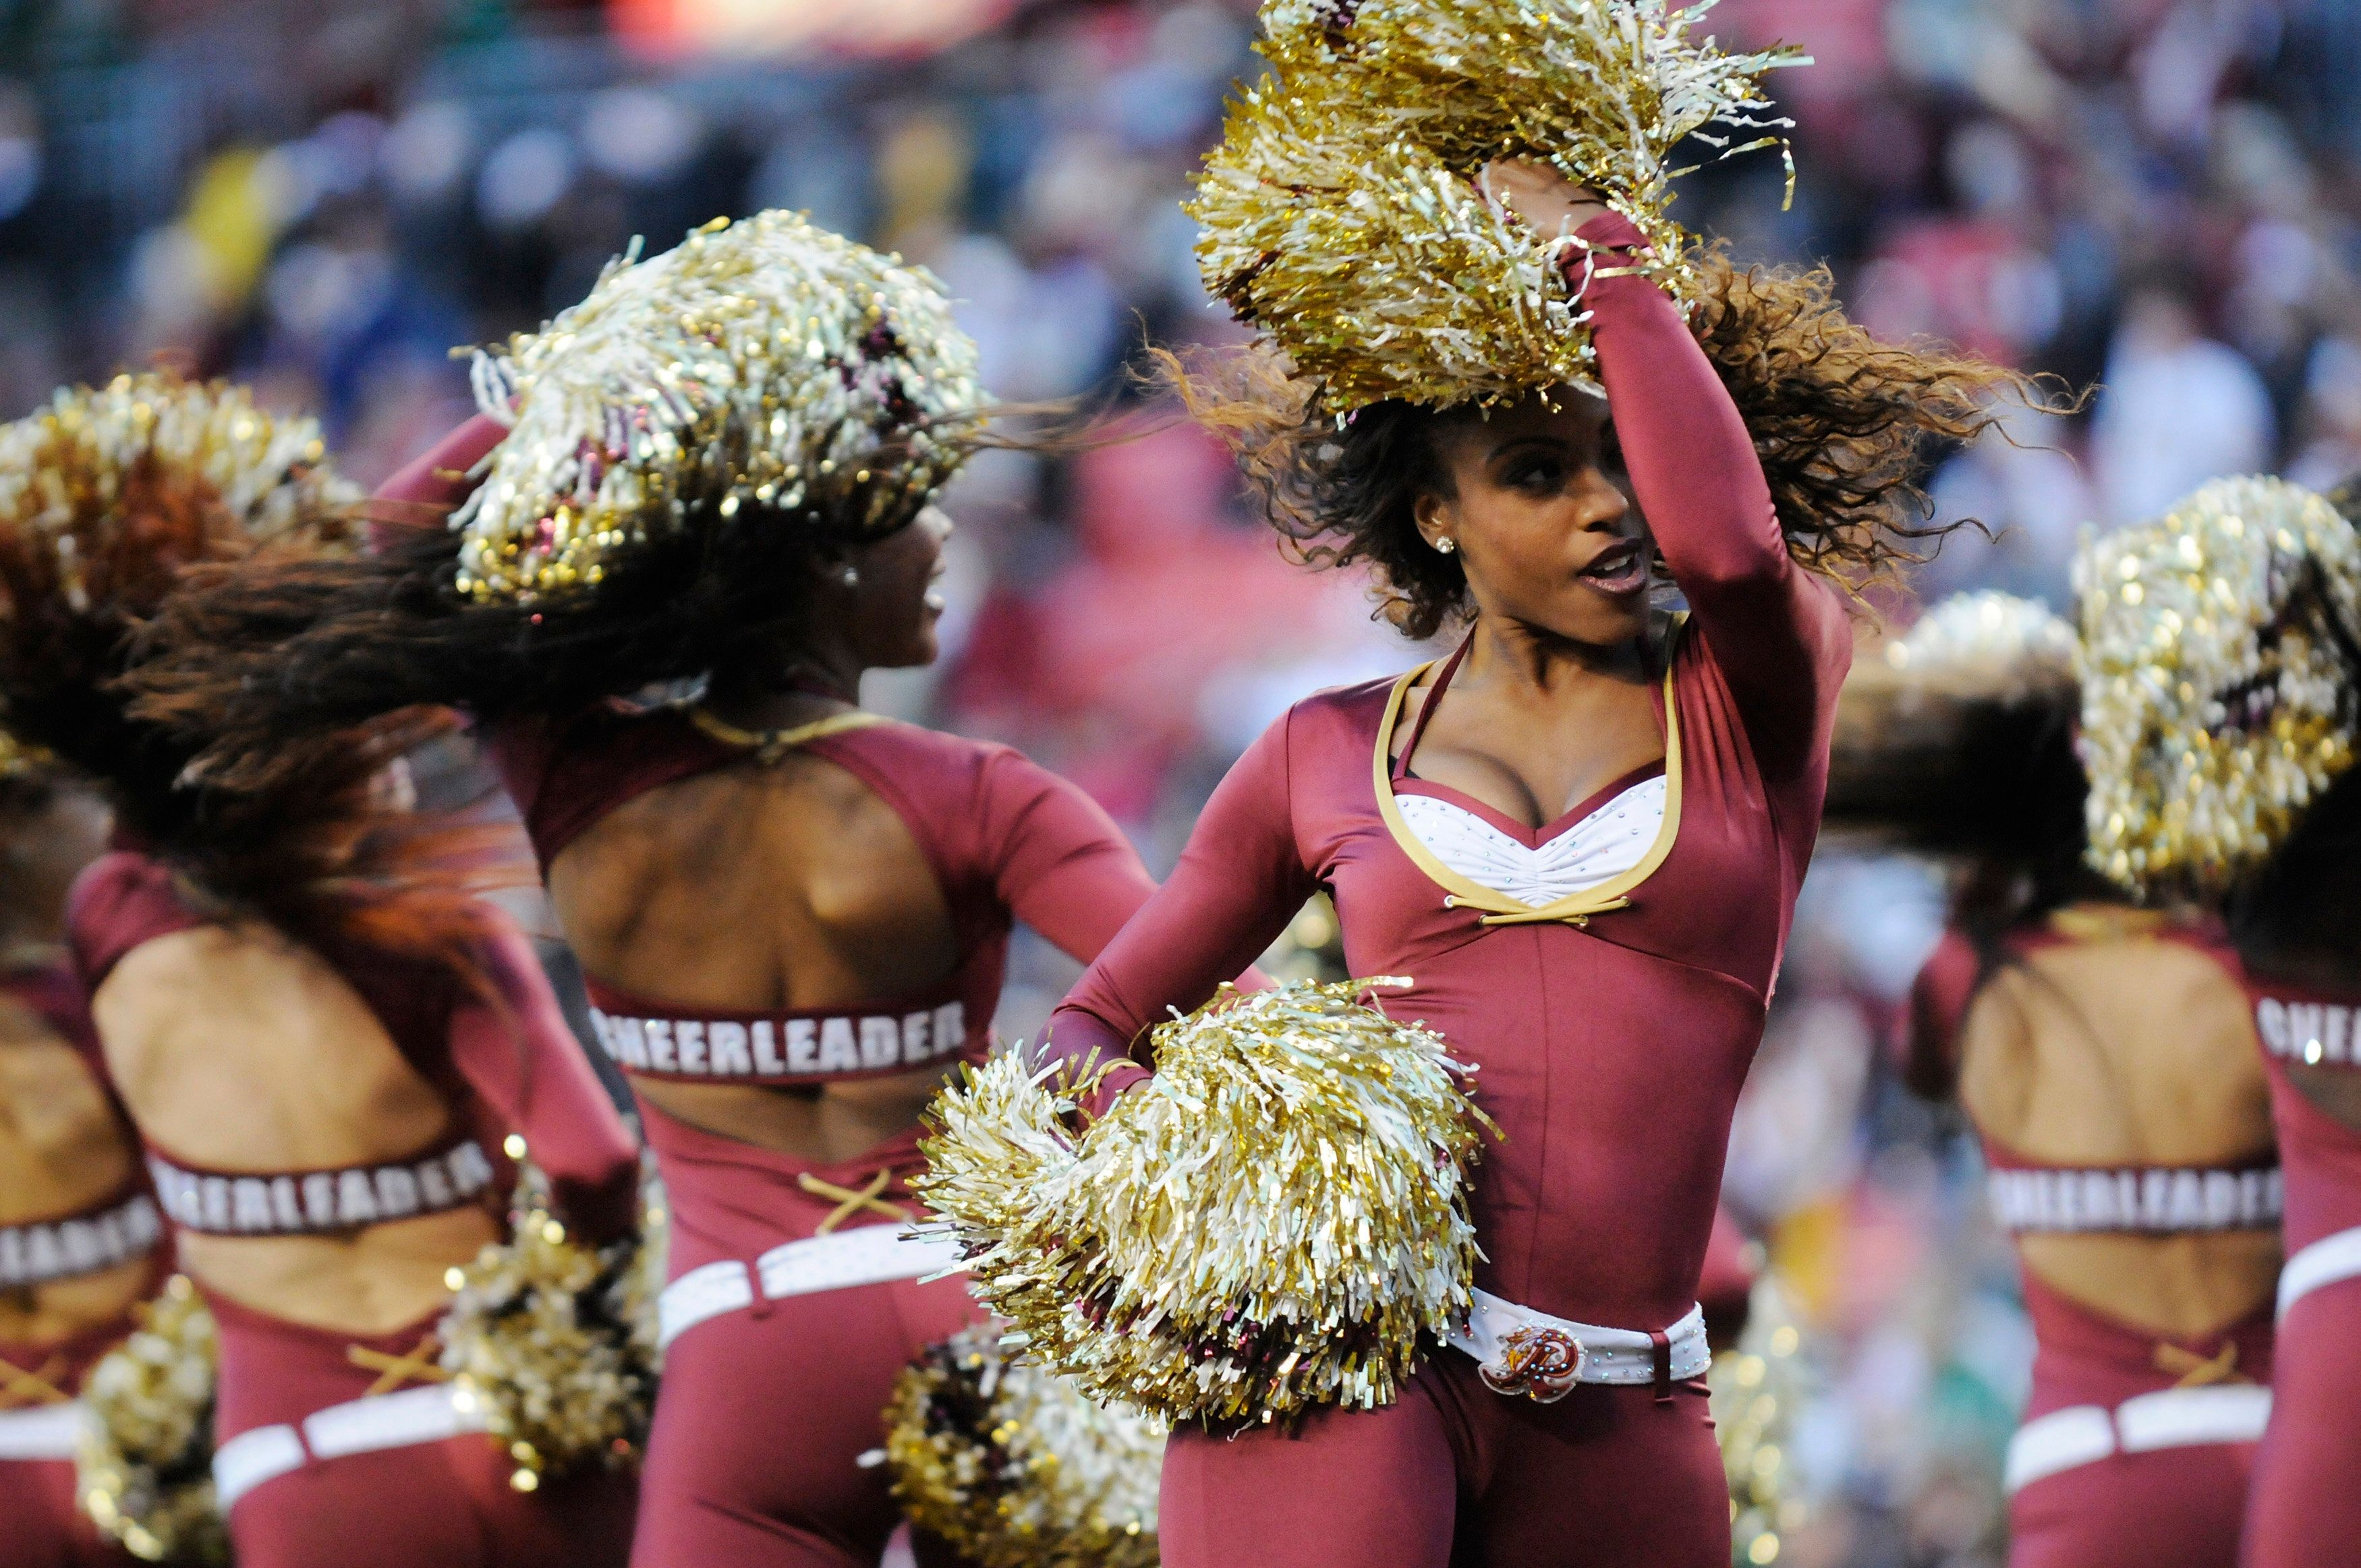 Washington Redskins cheerleaders perform during a break in the action during the second half of the NFL football game between the New York Jets and the Washington Redskins in Landover, Maryland, December 4, 2011. REUTERS/Jonathan Ernst   (UNITED STATES - Tags: SPORT FOOTBALL)